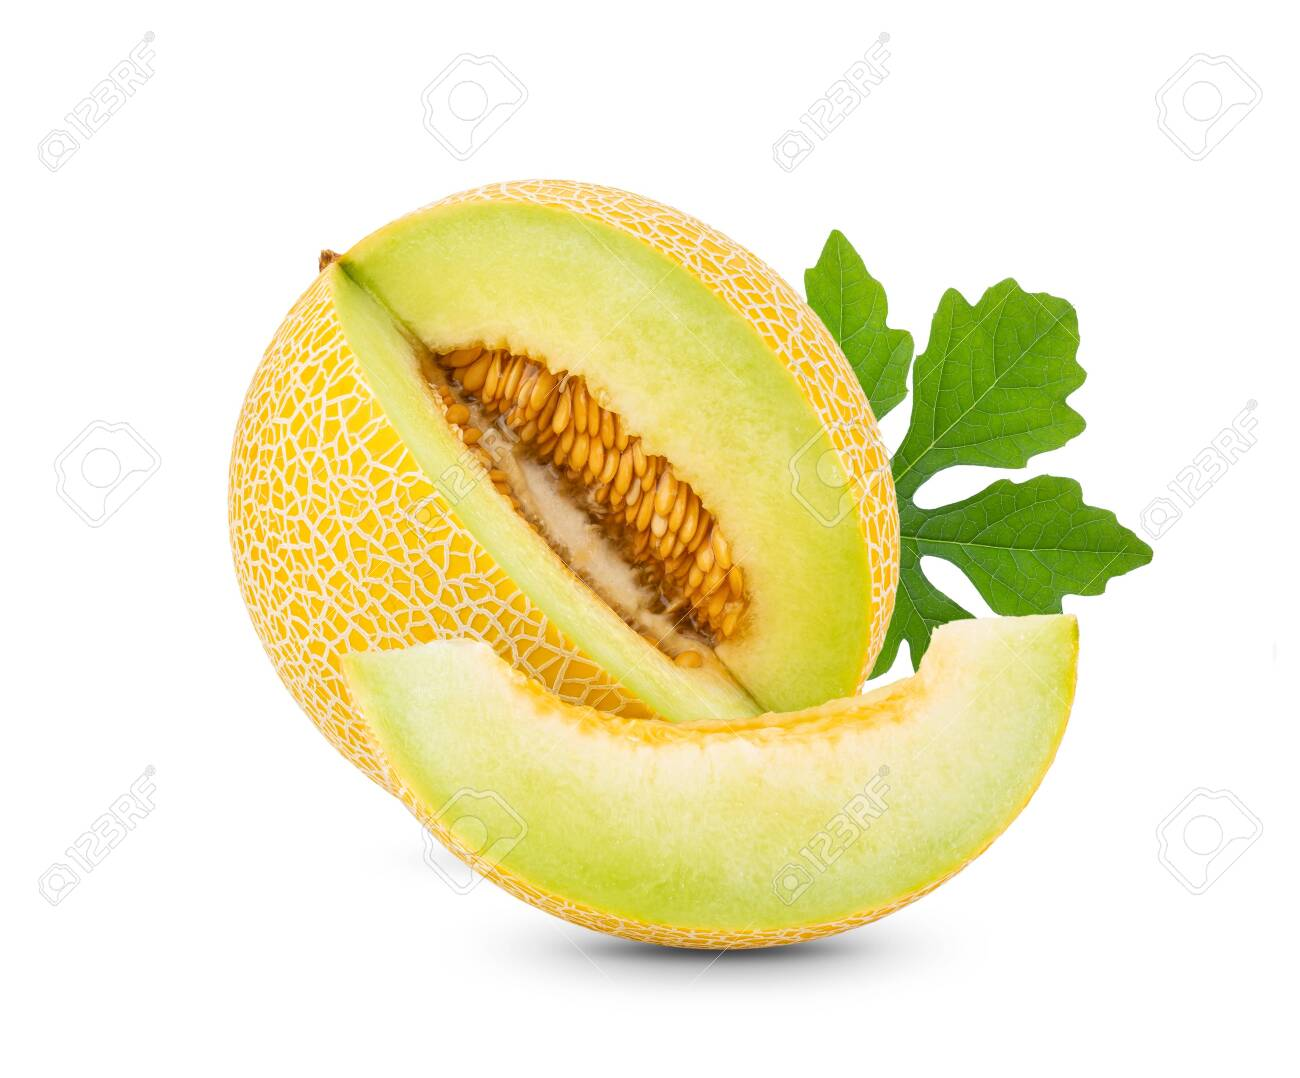 Yellow Cantaloupe Melon With Leaf Isolated On White Background Stock Photo Picture And Royalty Free Image Image 128228446 Cantaloupe flavor depends upon environmental conditions. yellow cantaloupe melon with leaf isolated on white background